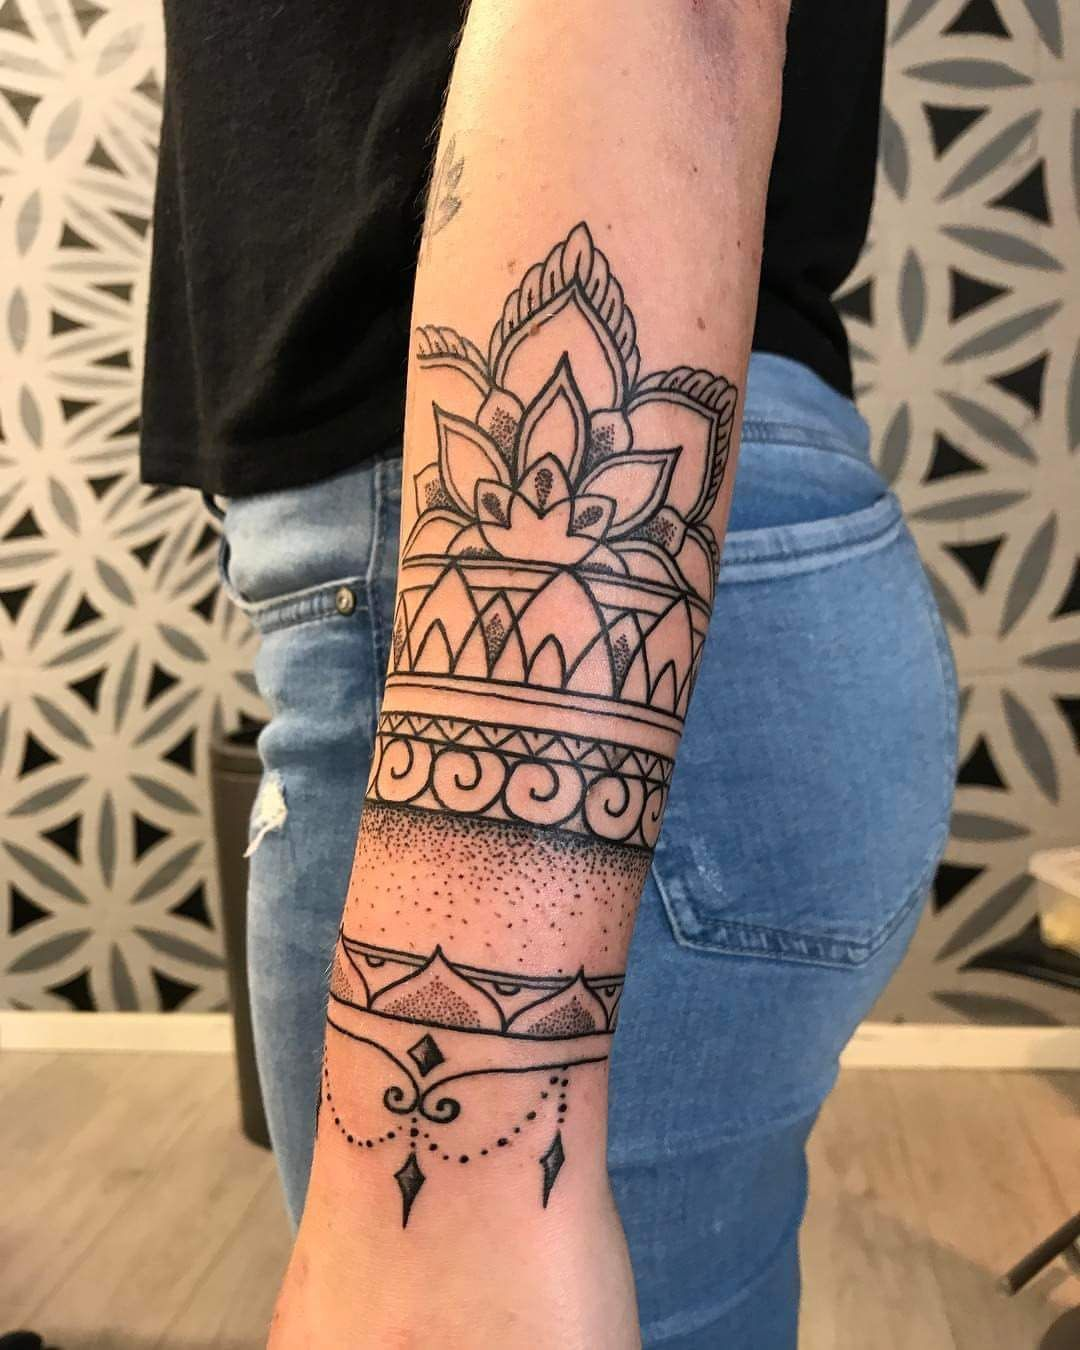 Big And Spacious Wrist Tattoo By Mandala Art Mandalatattoo Mandalatattooideas Mandalatattoodesigns Tattoos Tatuagem Casal Tatuagens Novas Tatuagem Na Mao